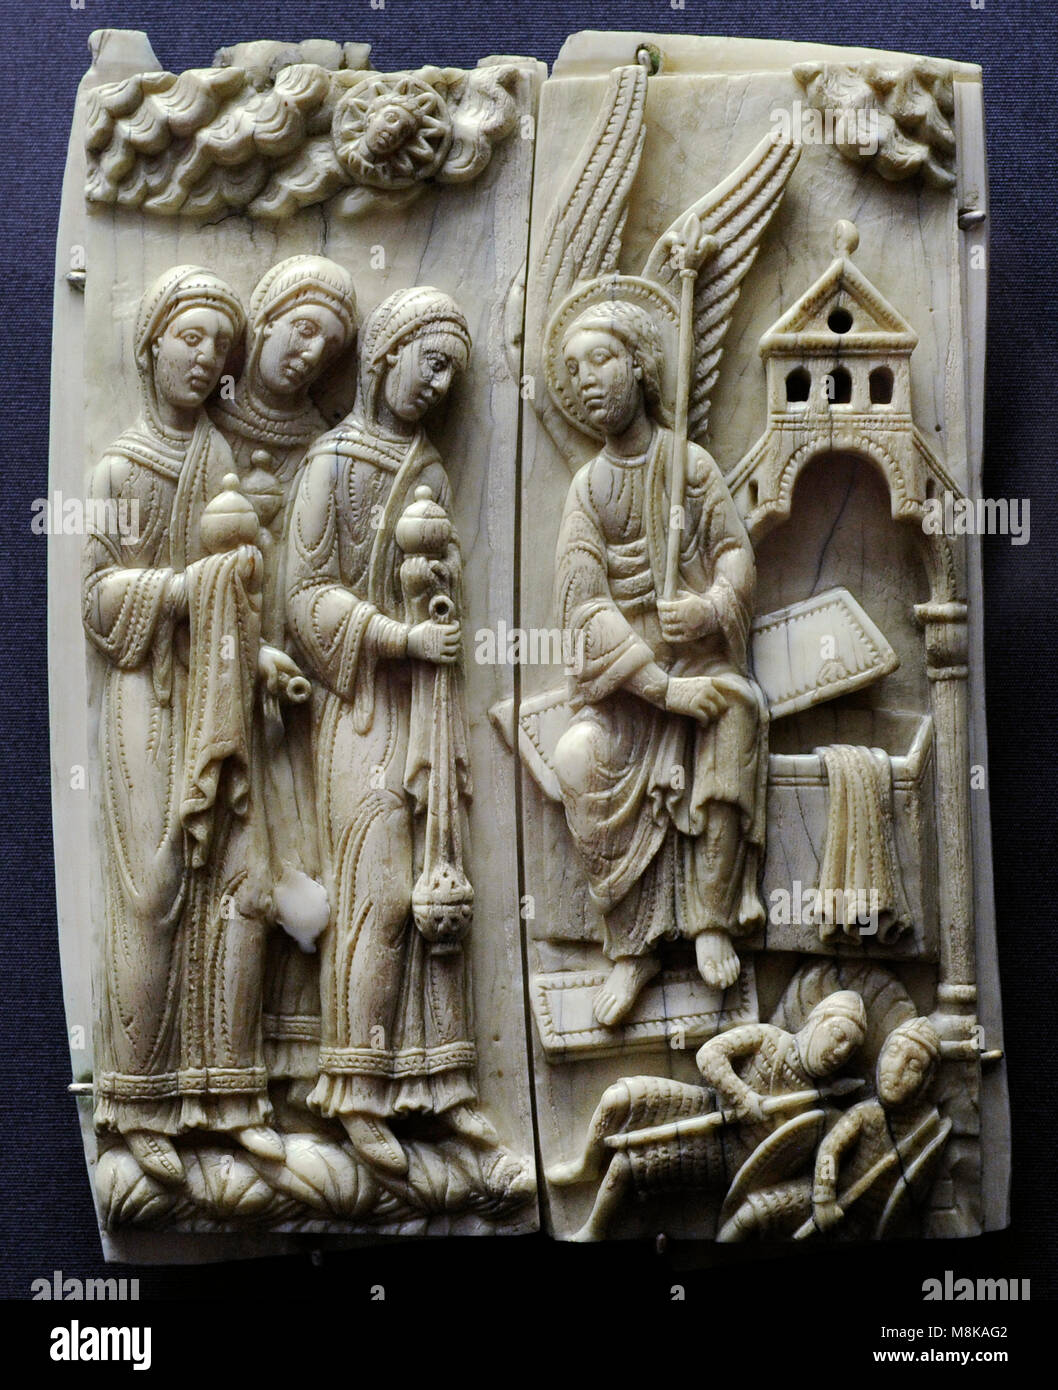 The Three Mayrs at the Sepulchre. Cologne, c. 1150-1160. Germany. Walrus ivory. Museum Schnütgen. Cologne, - Stock Image